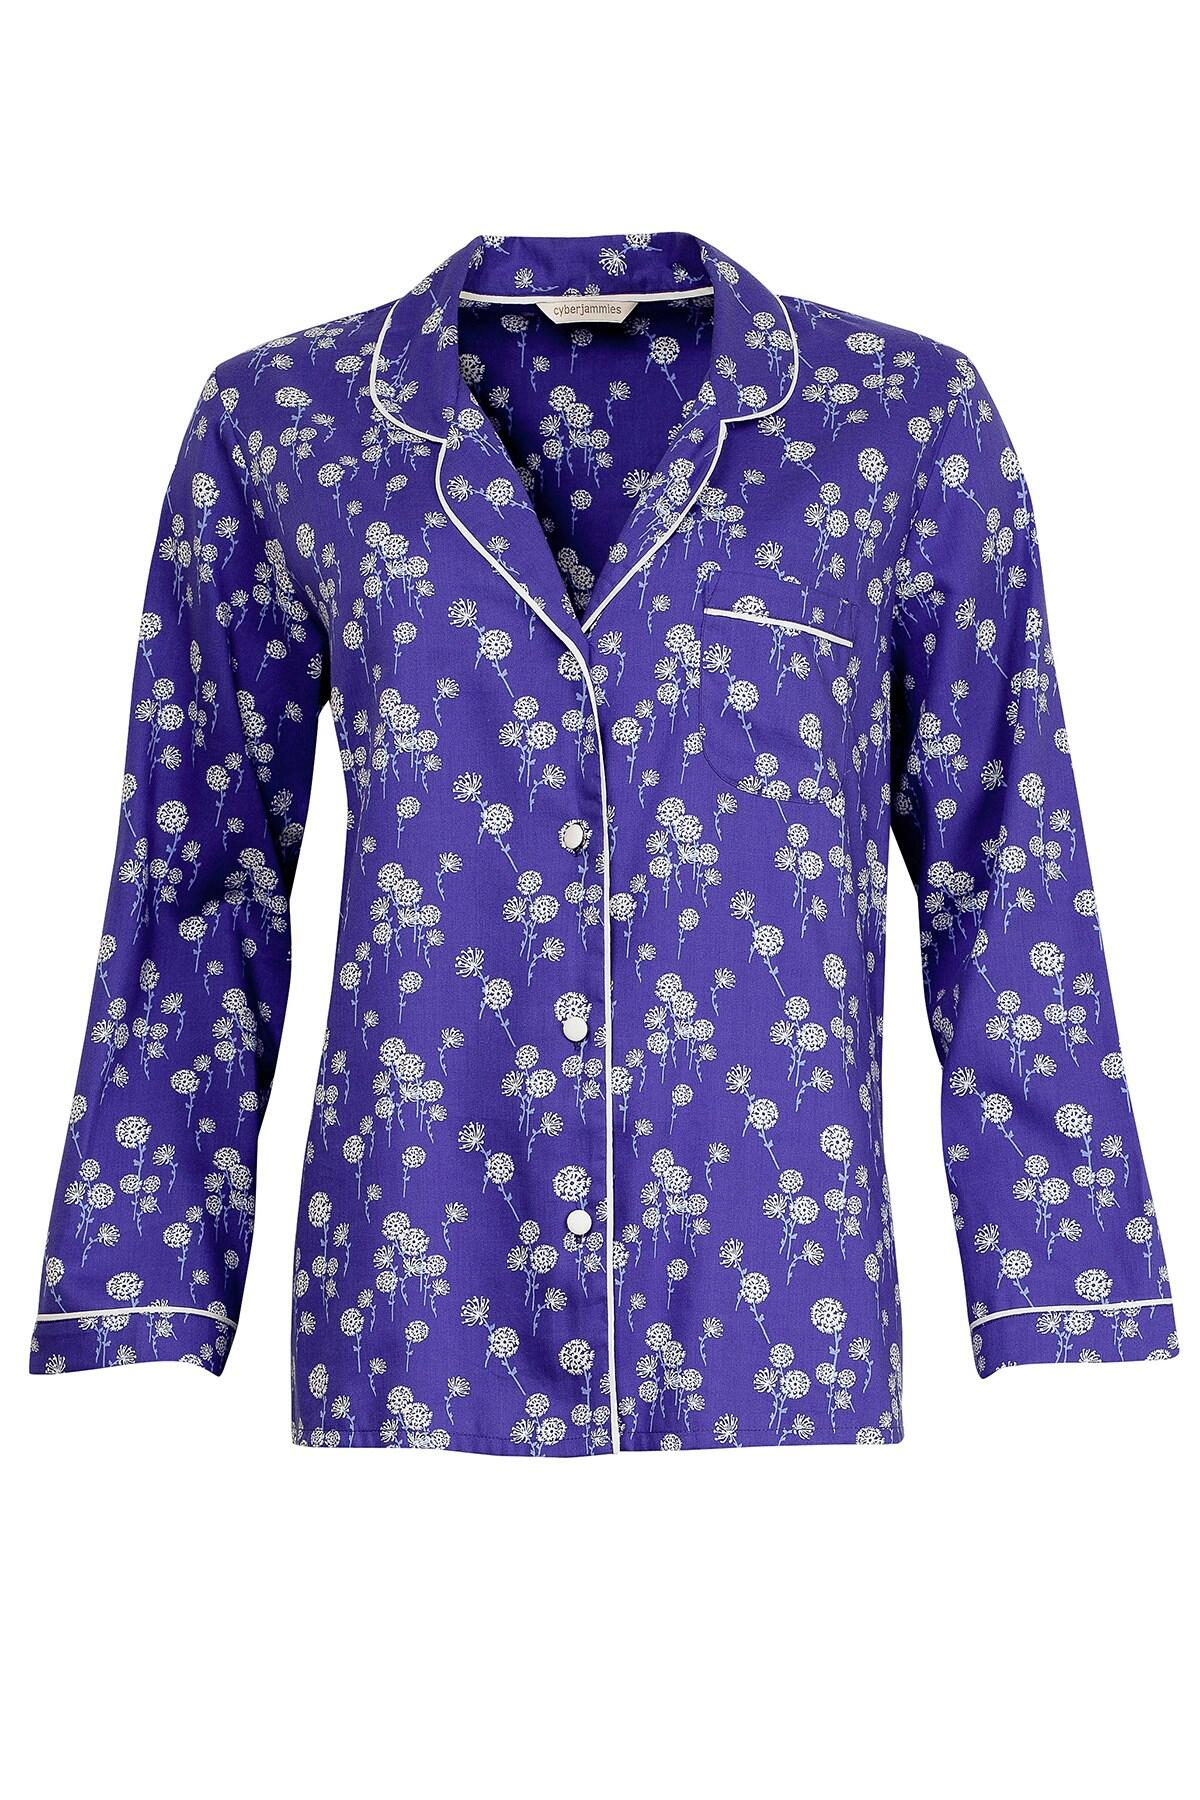 Dandelion Shower Woven Long Sleeve Pyjama Top - Blue